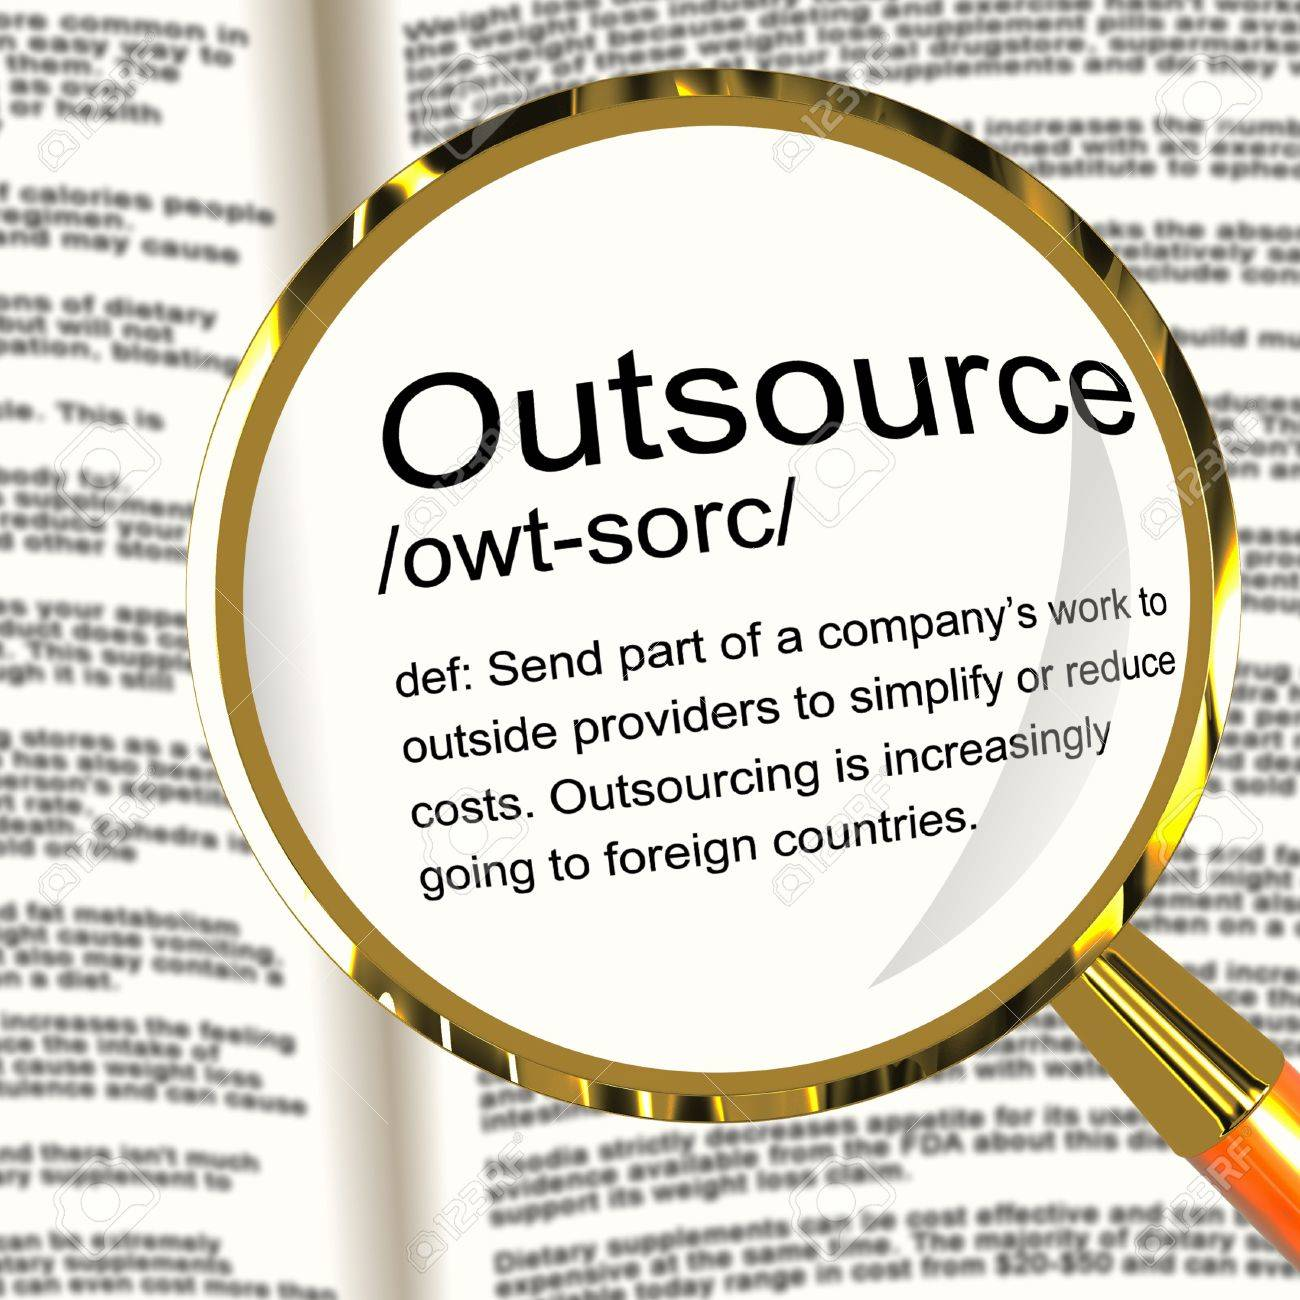 outsource definition magnifier shows subcontracting suppliers